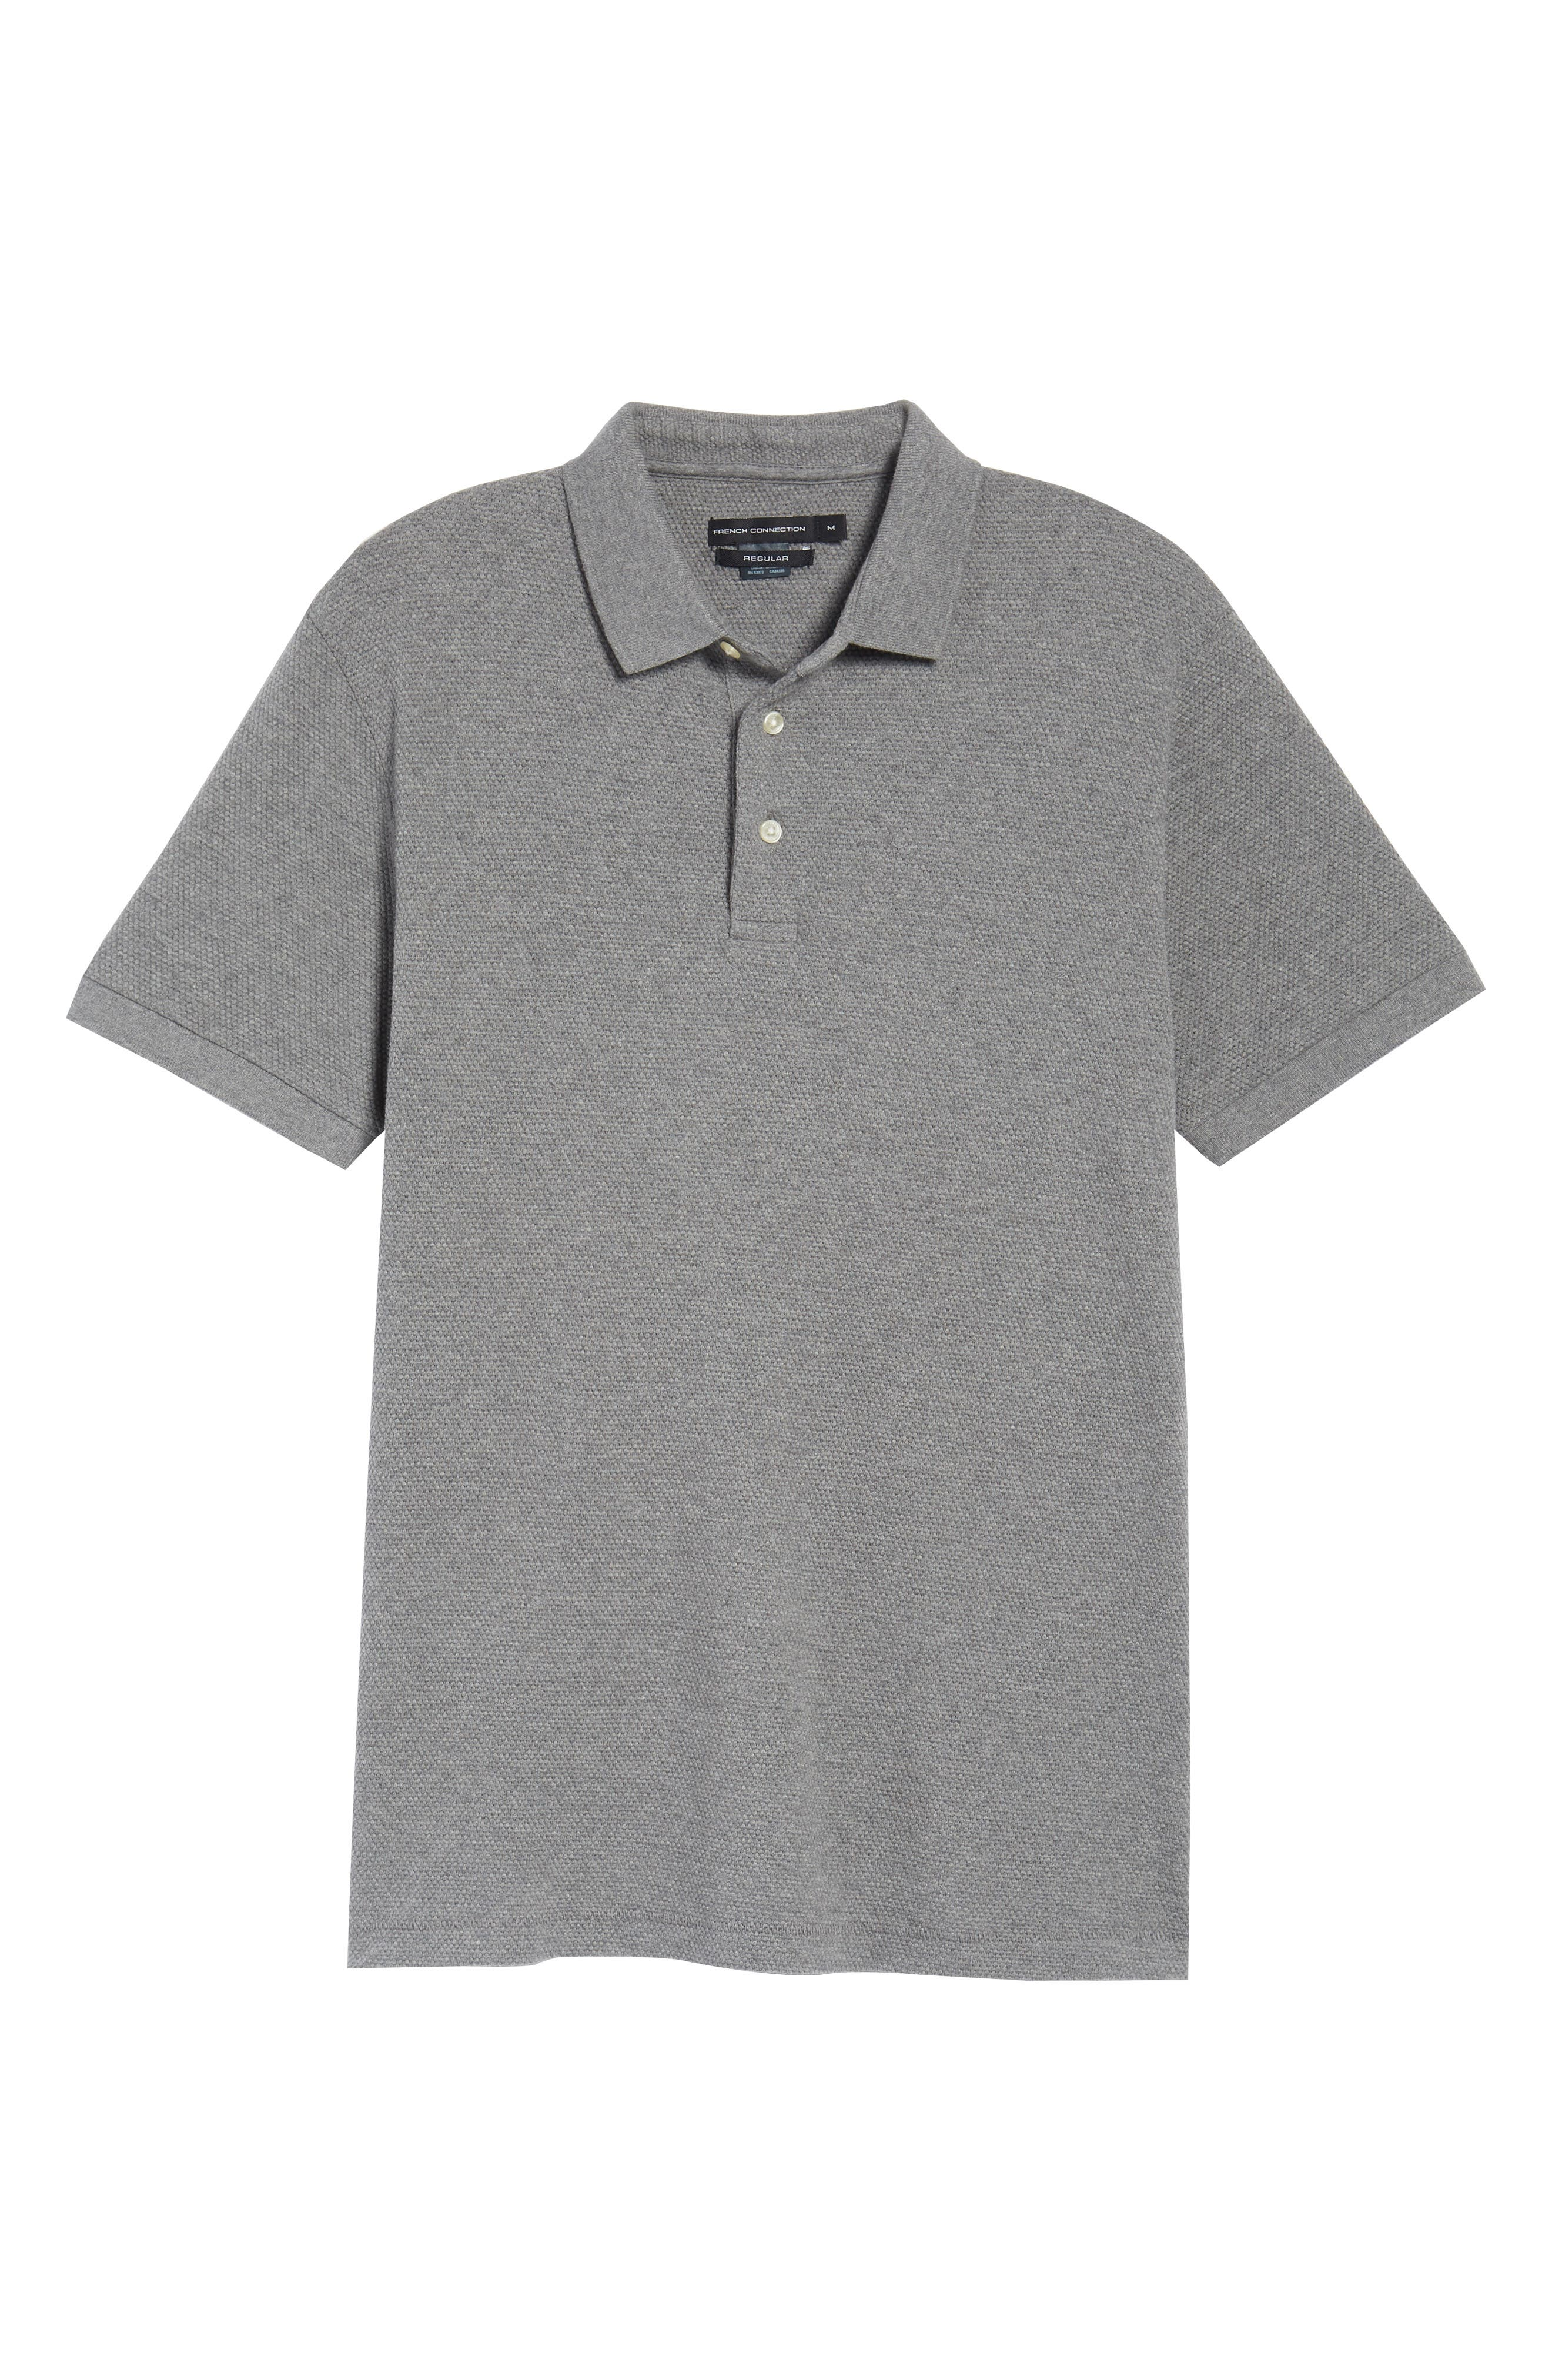 FRENCH CONNECTION, Ampthill Pebble Knit Polo, Alternate thumbnail 6, color, 020